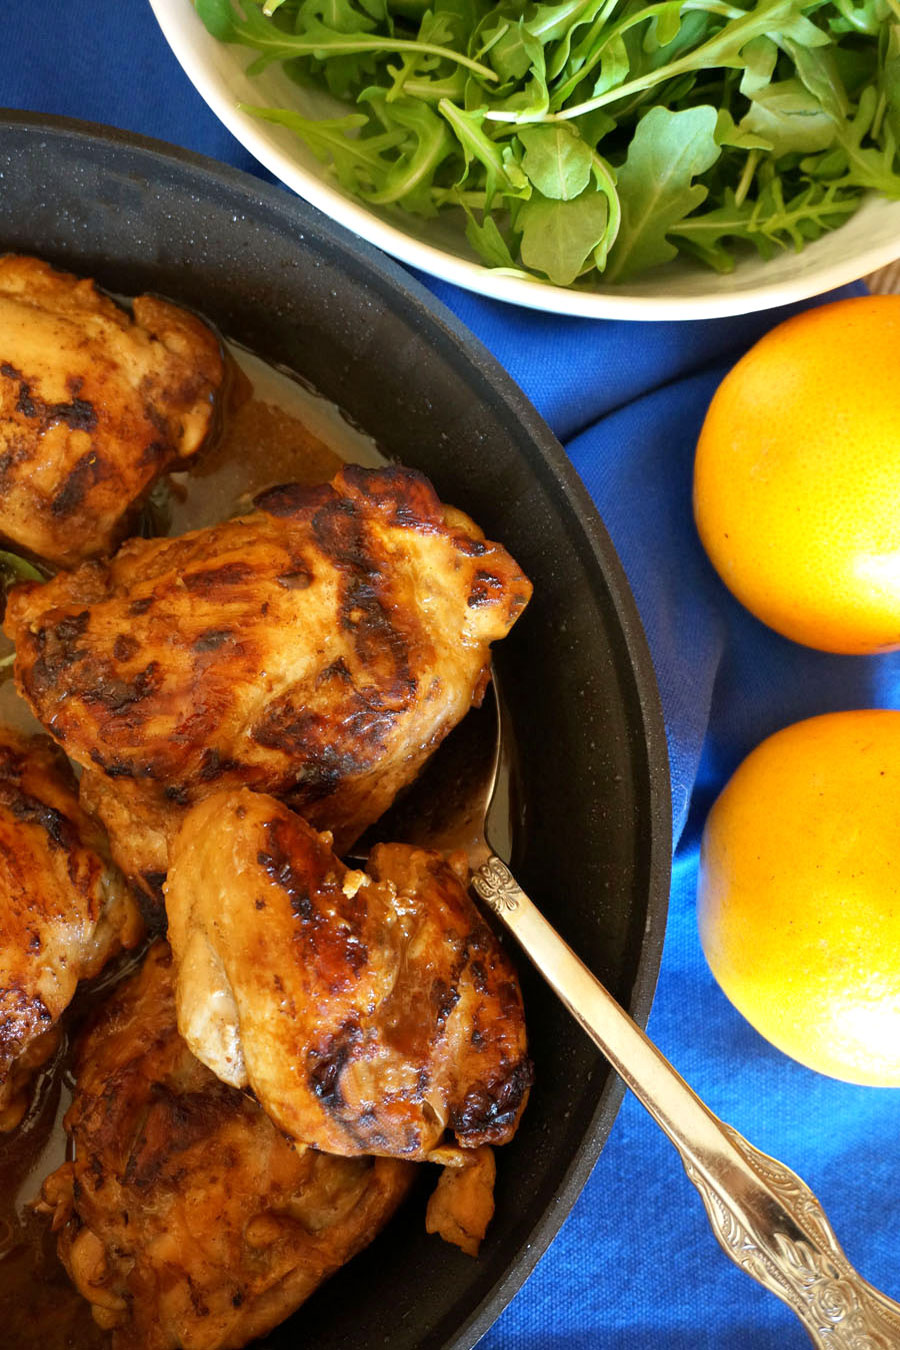 Middle eastern glazed chicken aip paleo whole30 grazed enthused my middle eastern glazed chicken serve it with cauliflower rice and a cucumber salad for an easy three dish ethnic meal recipe can be found on forumfinder Gallery